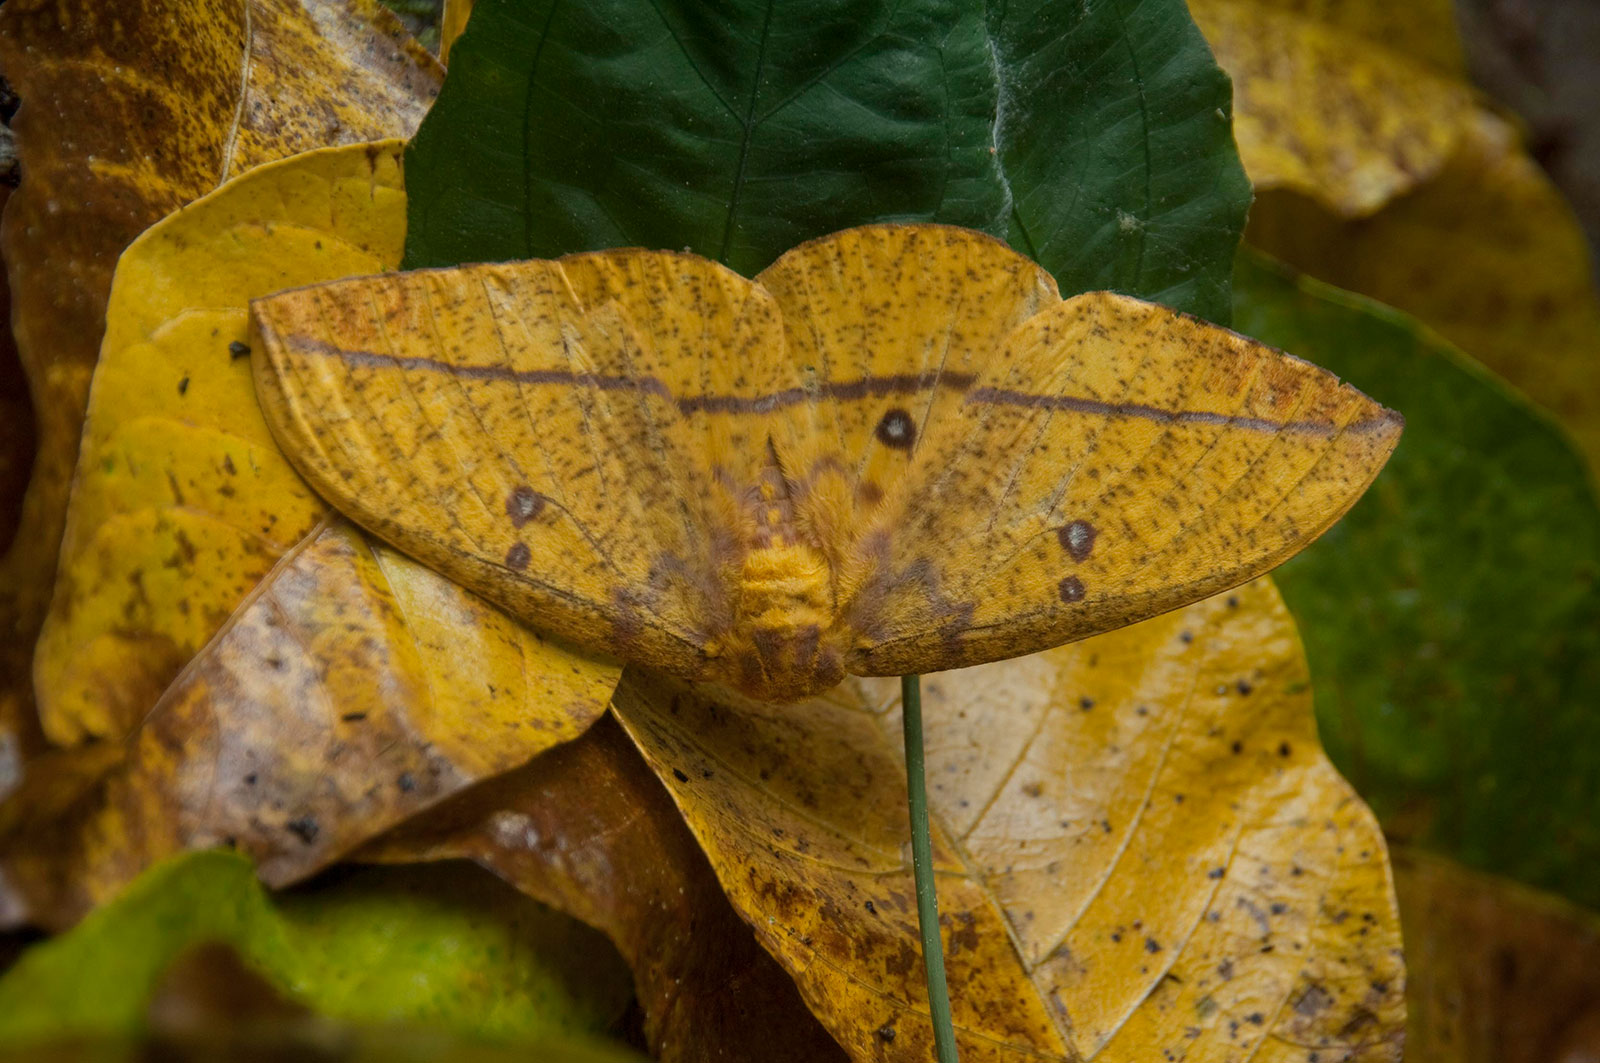 A yellow moth camouflaged among leaves